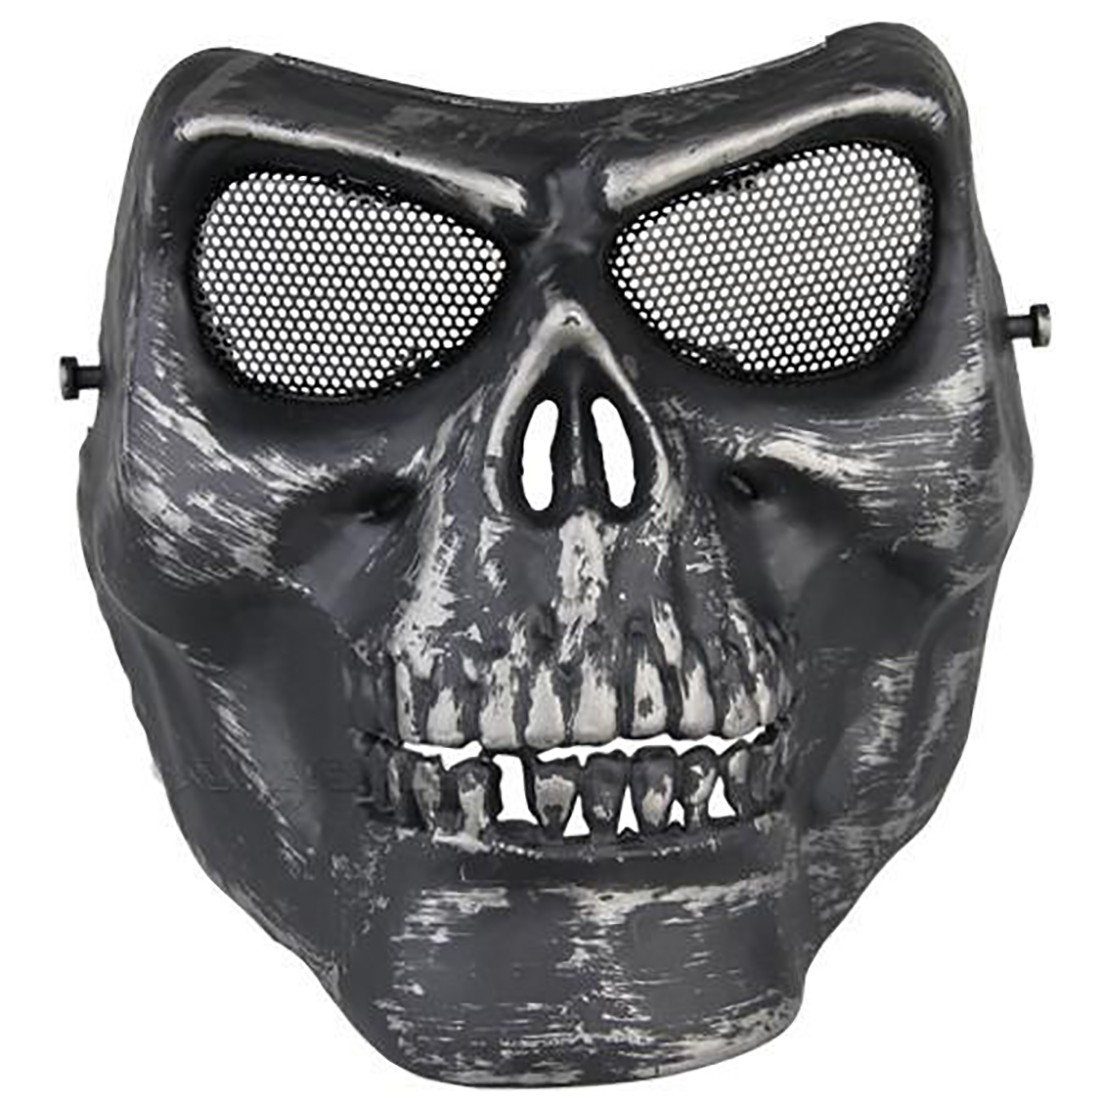 High Quality Outdoor Airsoft Paintball Mask Military Equipment Mascara Army Horror Tacitcal Masks Full Face Skull Mask Fallout